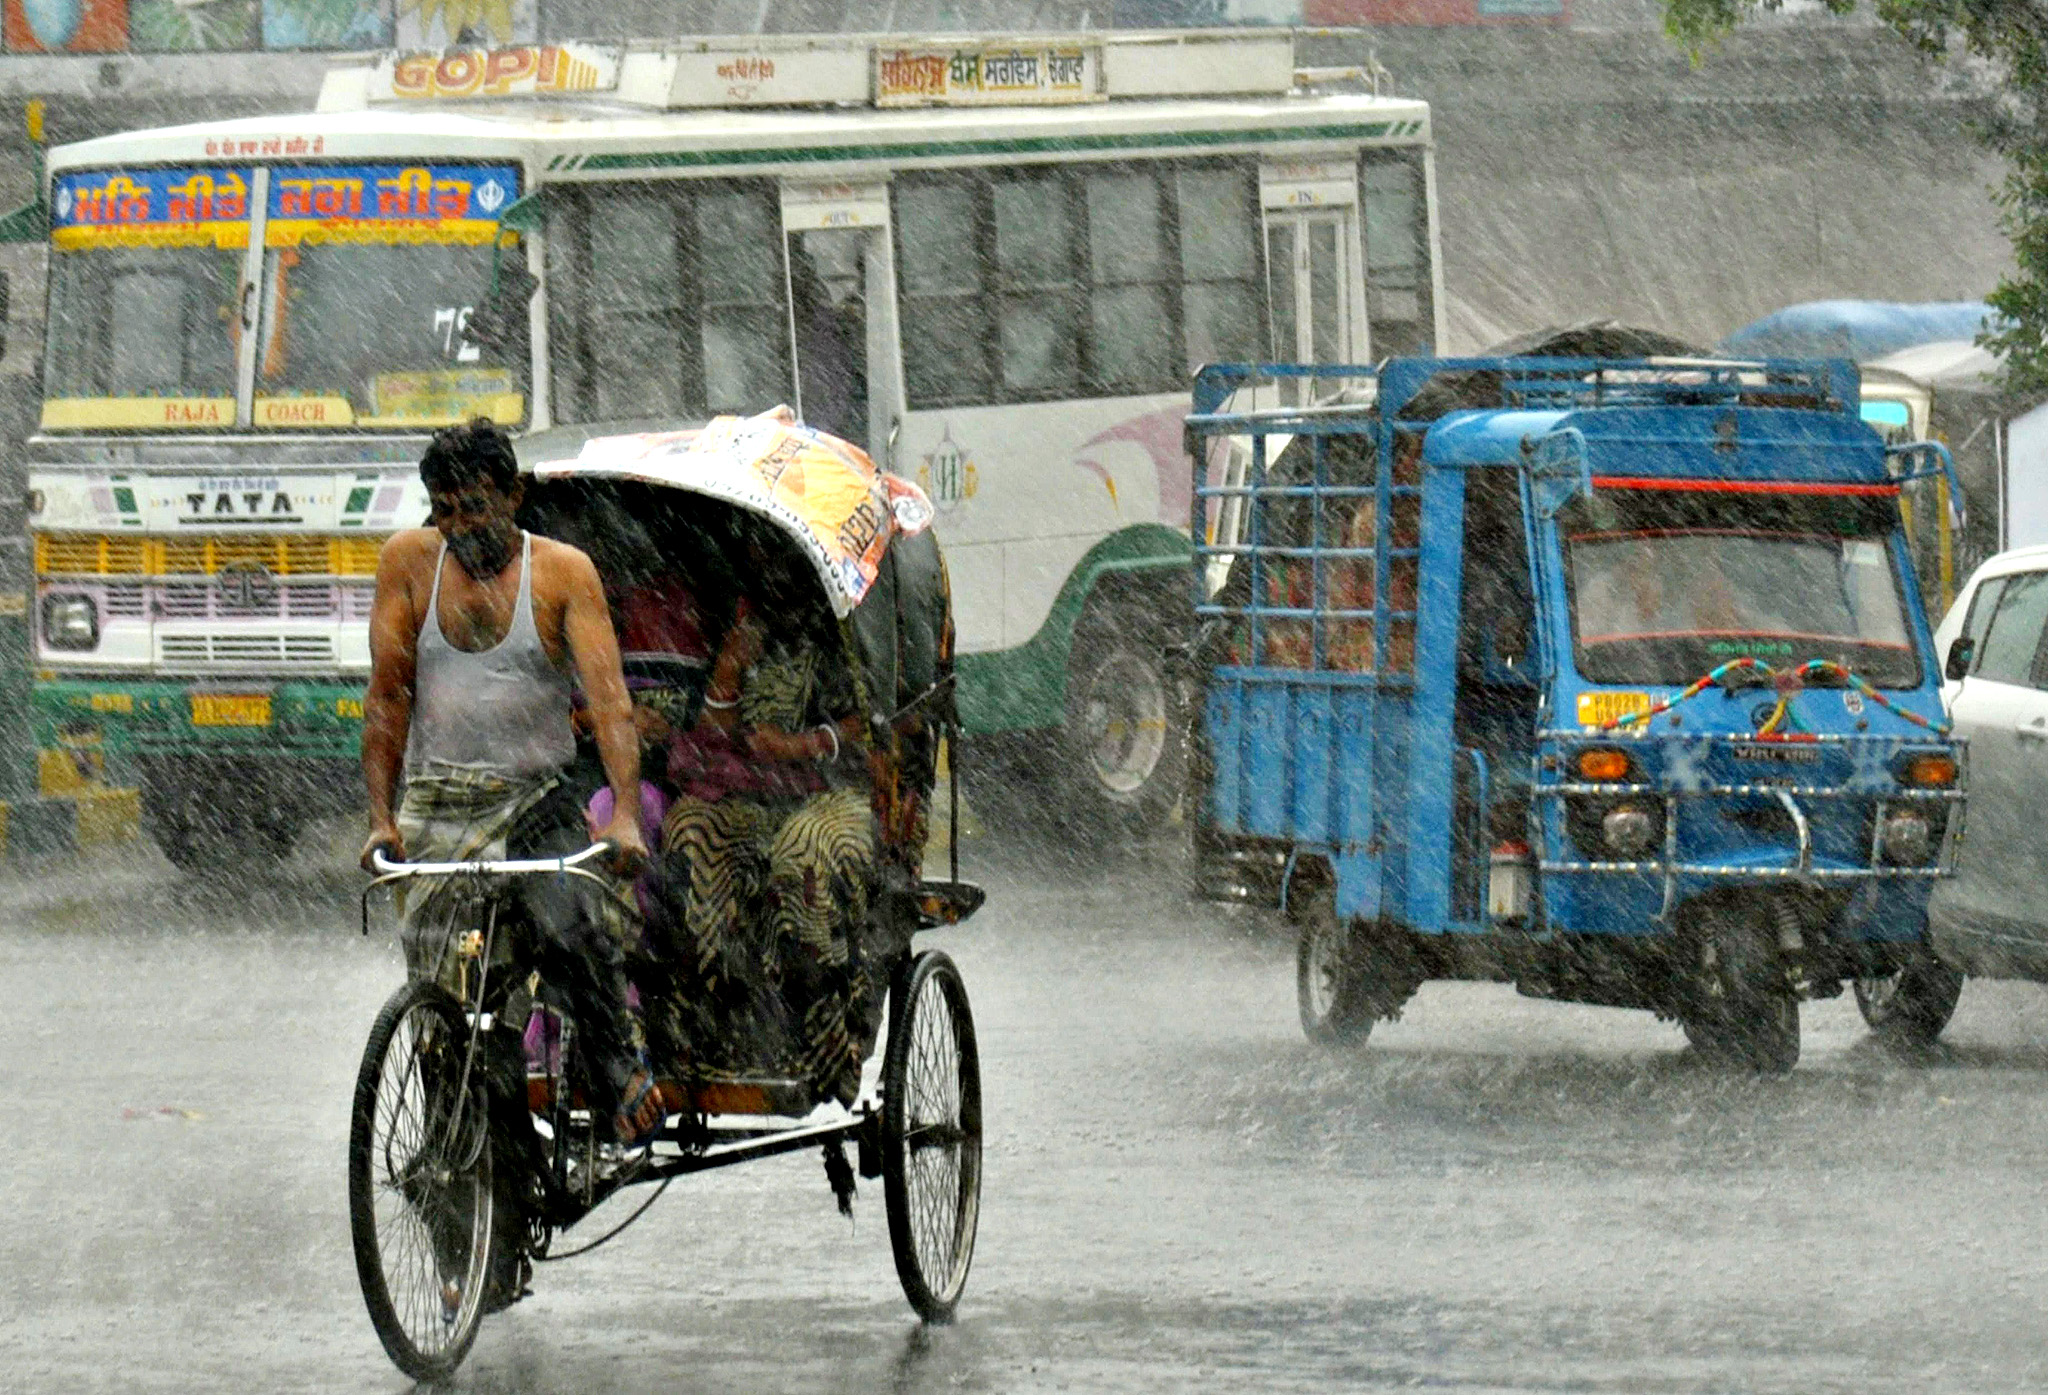 Indian commuters make their way through  a heavy downpour in Amritsar on June 25, 2014. Rain fell in several areas of northern India, bringing down temperatures in the region as the monsoon season approaches.